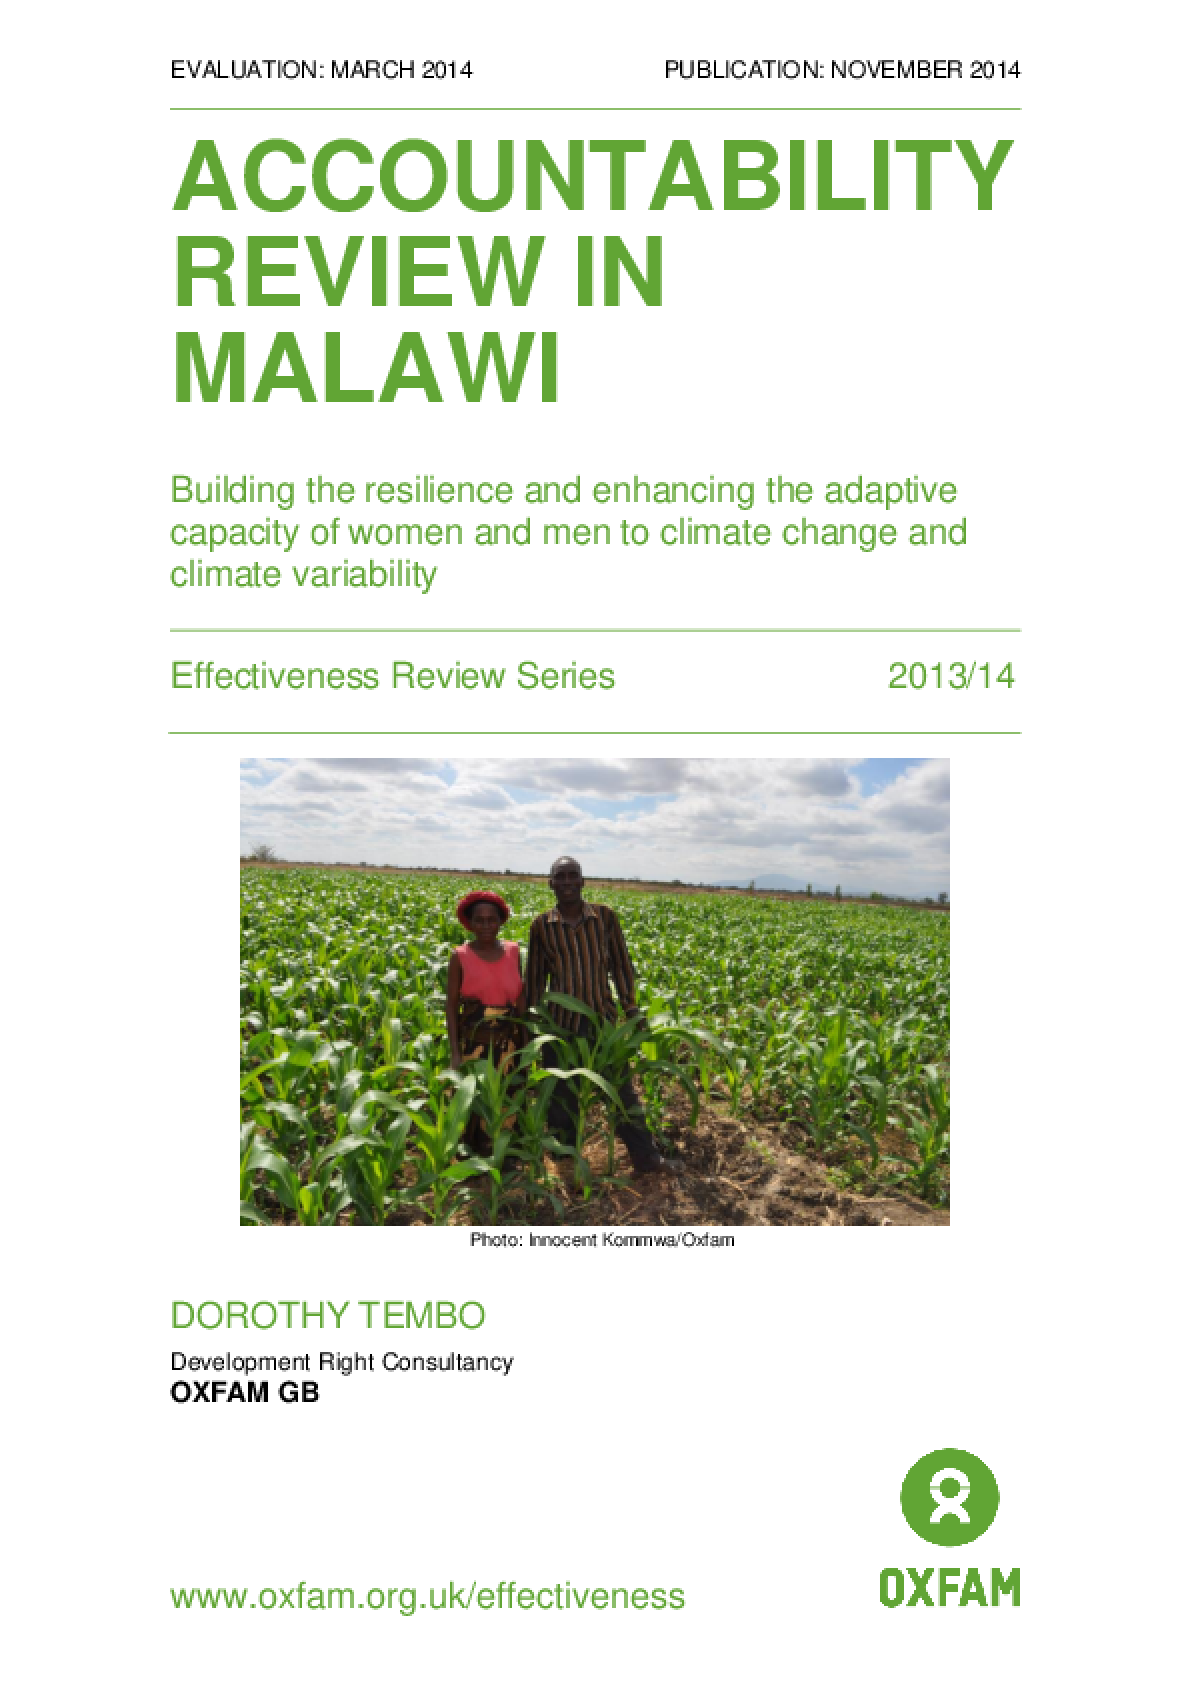 Accountability Review in Malawi: Building the resilience and enhancing the adaptive capacity of women and men to climate change and climate variability